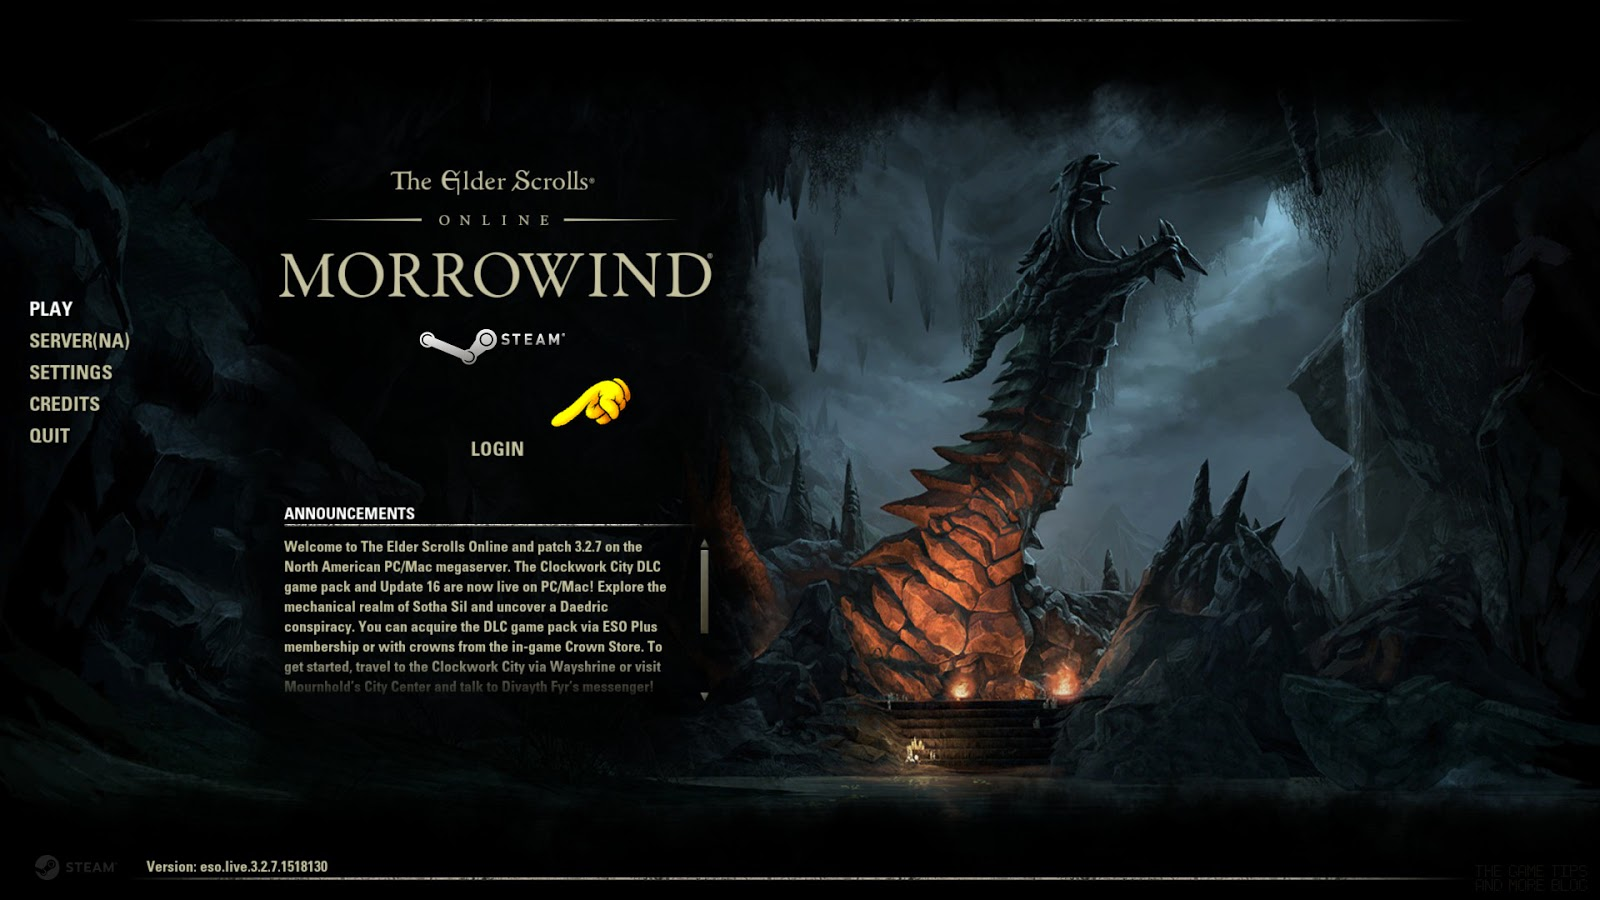 The Game Tips And More Blog: The Elder Scrolls Online - How To